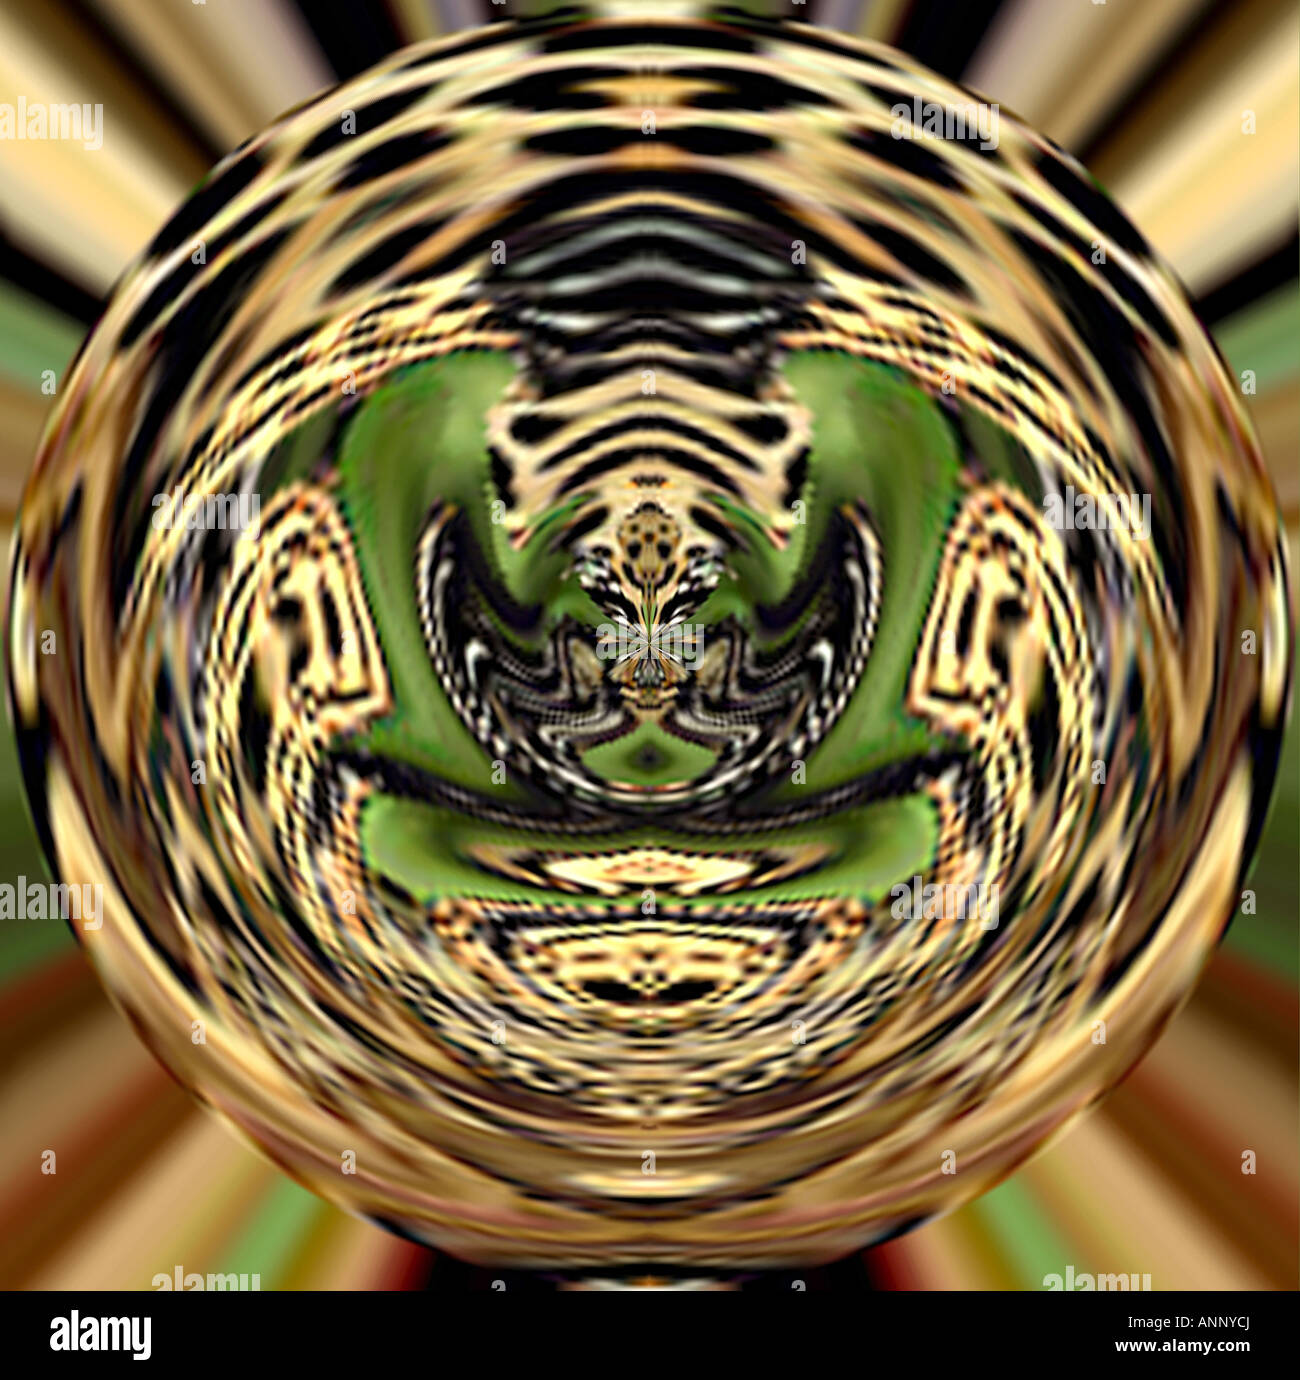 Global Jungle Abstract Fine Art Image for Environmental Tourism Business or Sports Logo or as Dramatic Art Kanha - Stock Image